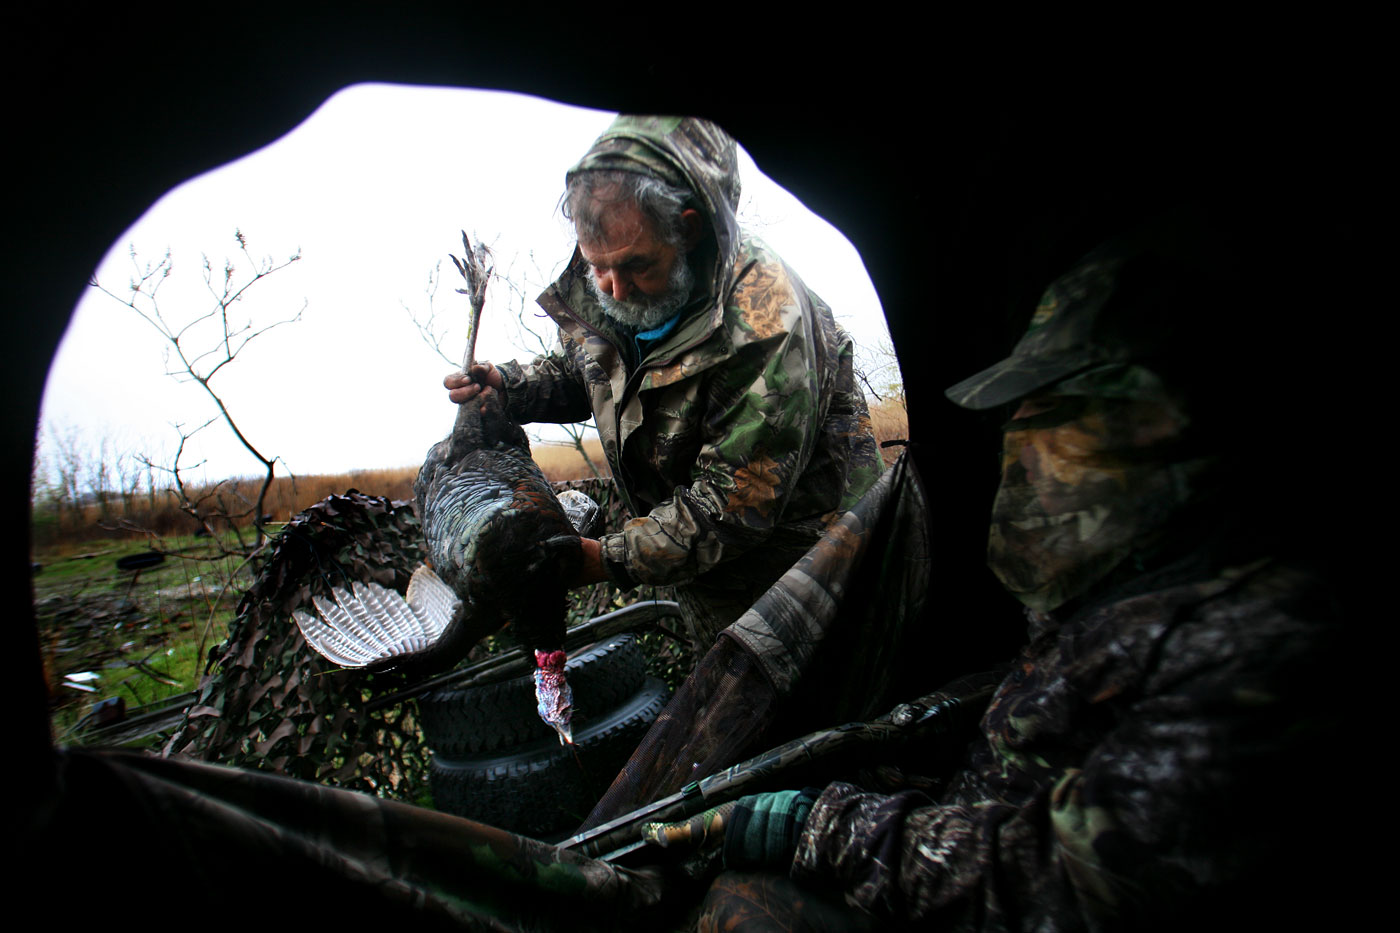 Frank Wasylink looks over a turkey that was shot by his son, Frank, Jr., during opening day of Turkey Hunting Season on a private property in Stratford, Connecticut. Mr. Wasylink is a senior hunter safety instructor with the Connecticut Department of Environmental Protection. The turkey, which is about one-years-old, will provide about 4 famaily meals for the Wasylinks. The son and father were out enjoying opening day together and only one shot was fired the entire day, the one that put down this turkey by Frank, Jr. Frank, Sr., like many other hunters, views the opportunity to hunt with their family as a chance to spend quality time together - not only to grow closer together as a family, but also a chance to learn about nature and nature conservancy.